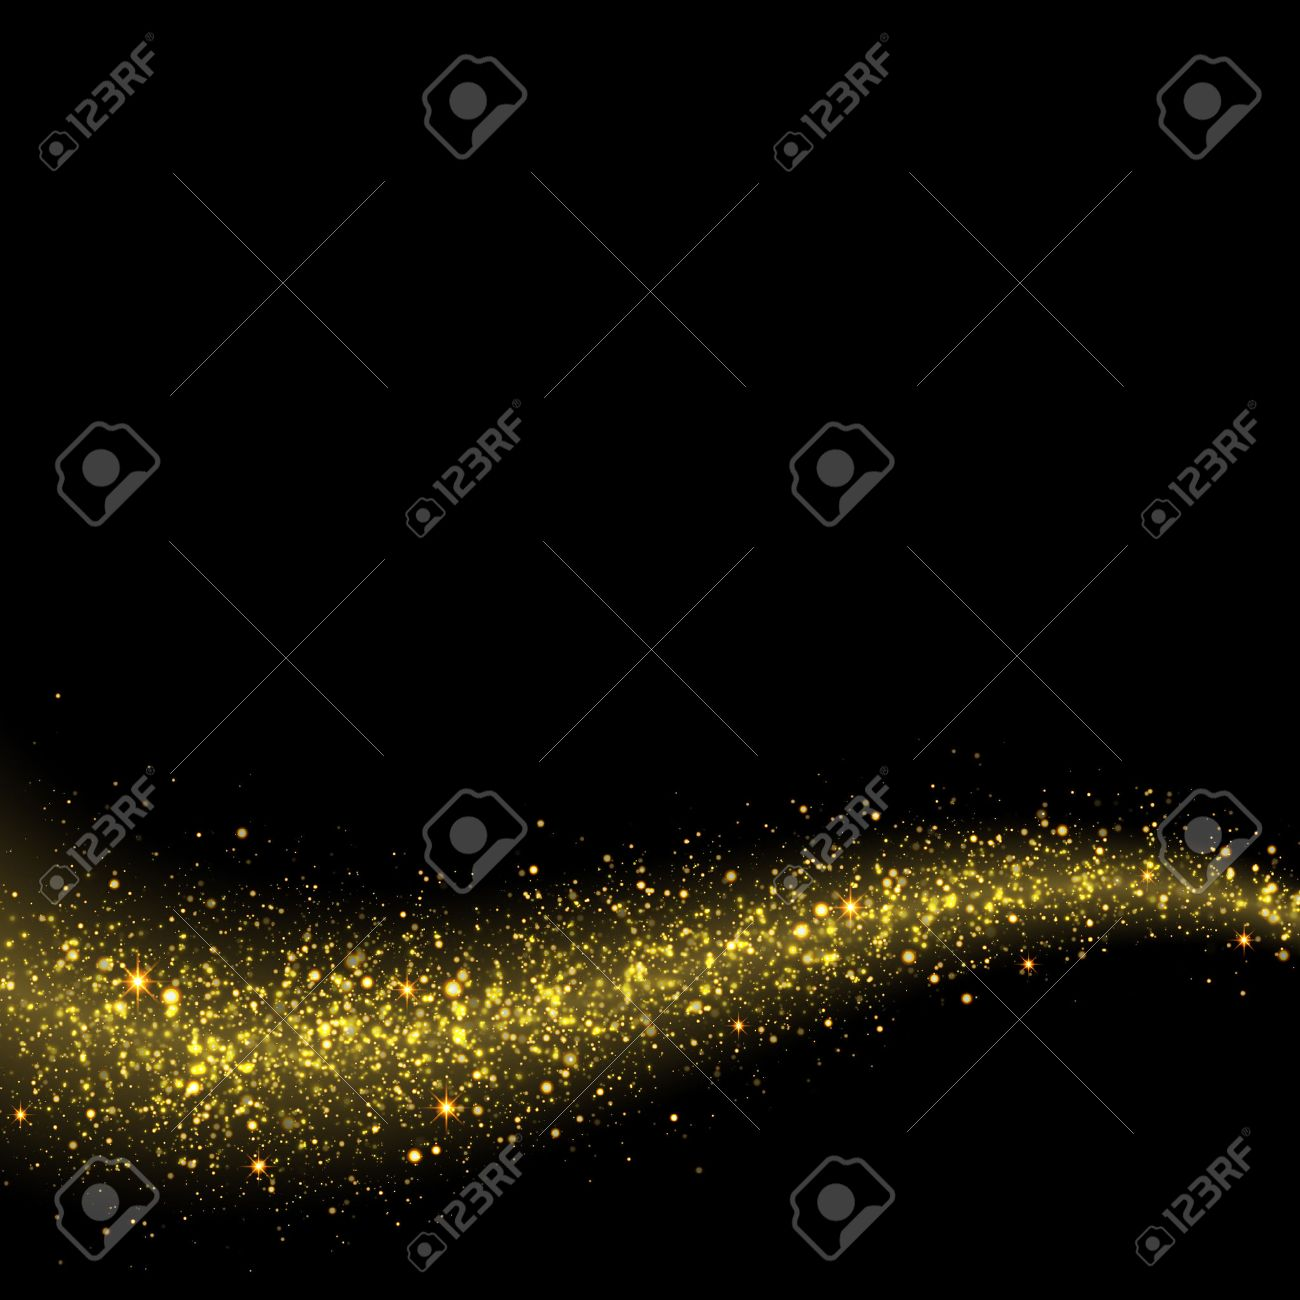 Gold glittering stars dust trail sparkling particles on black background. Space comet tail. - 52407008